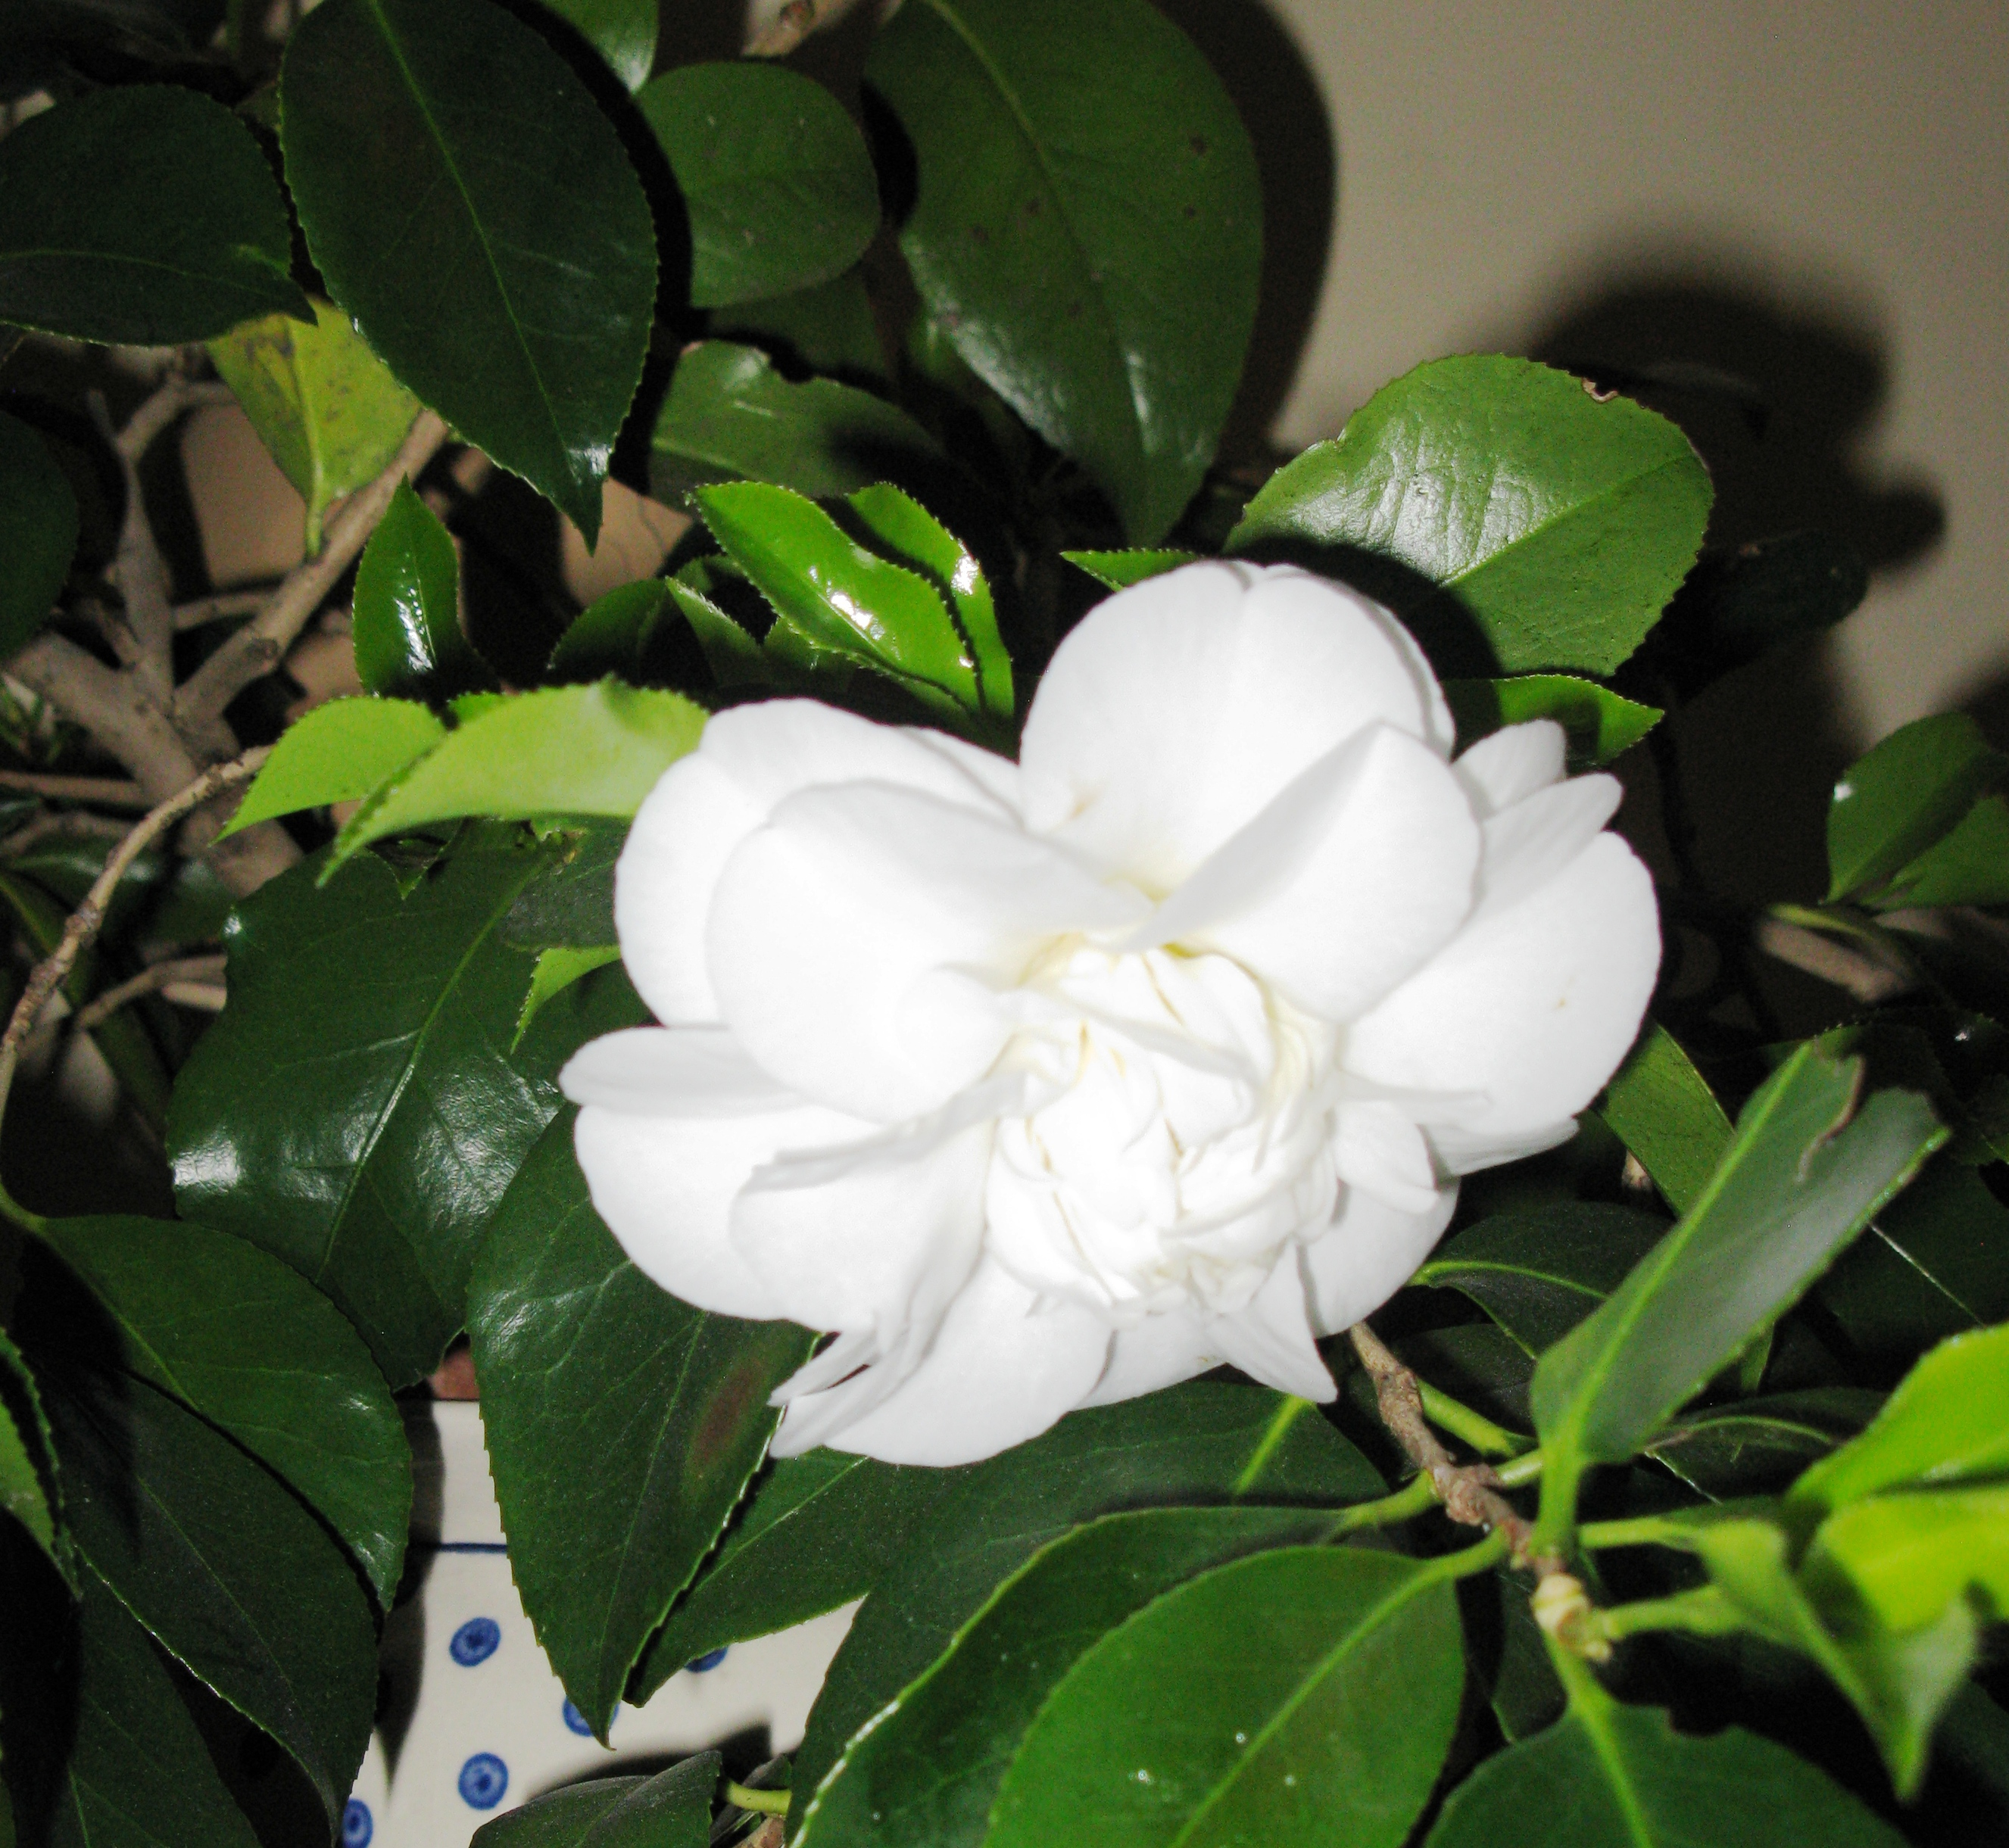 camellia still in flower photo l alexander